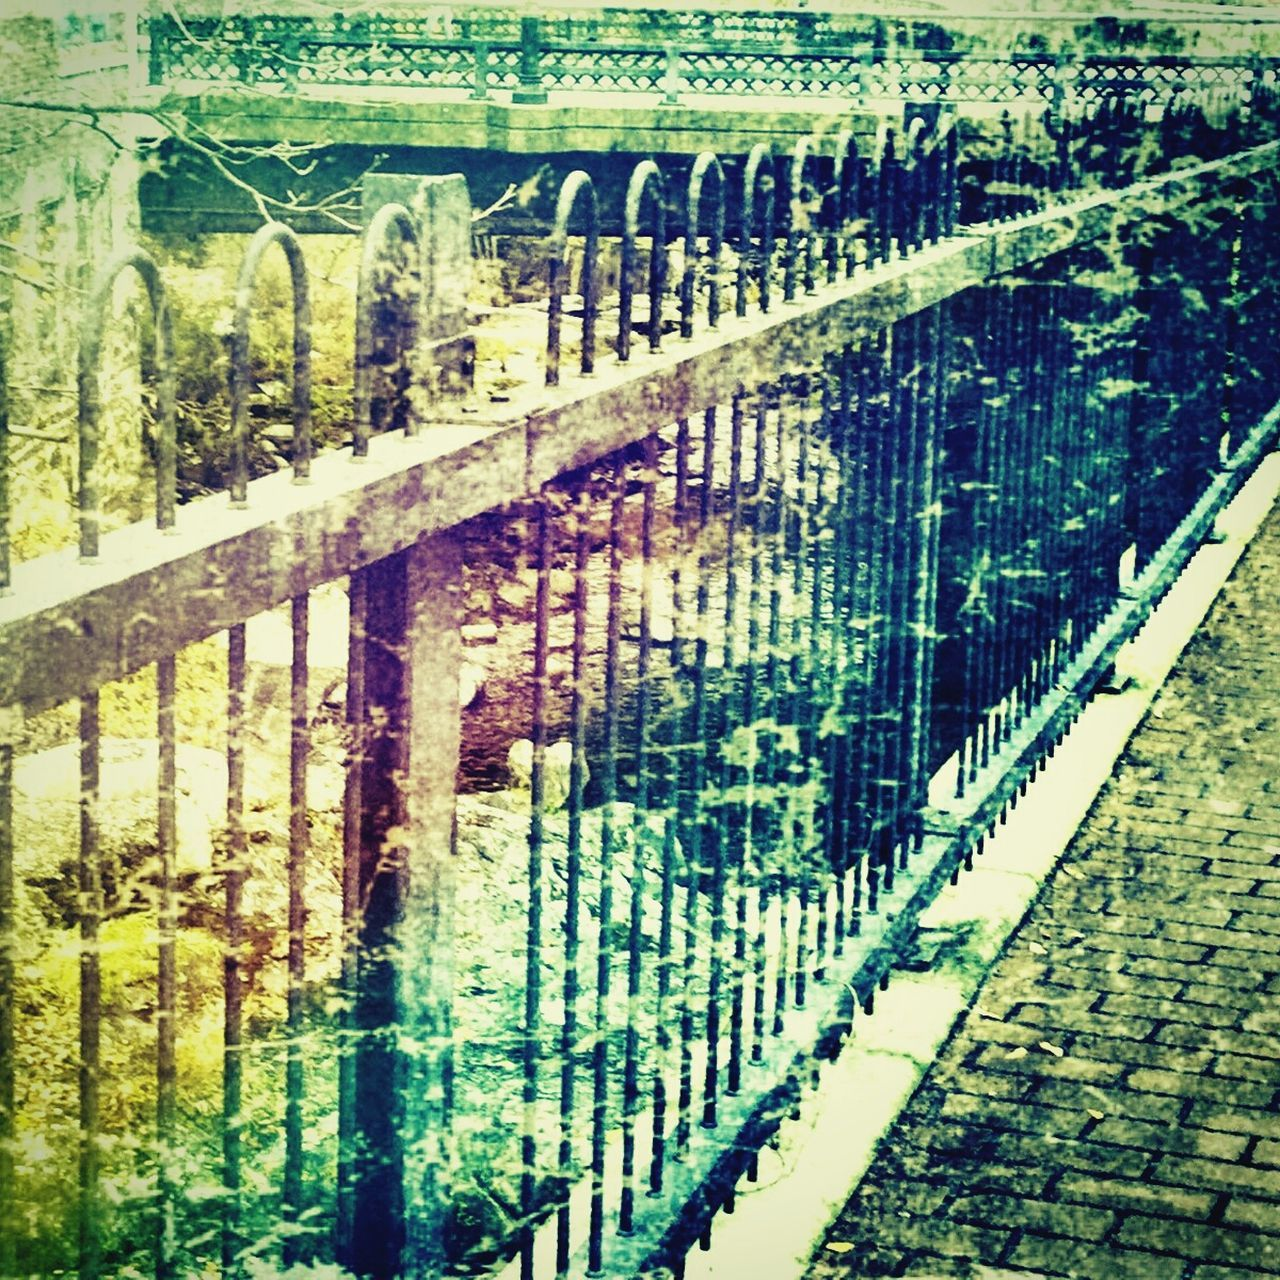 Distressed Metal Fence Tree Day Sunlight Transportation Railing Metal No People Protection Rail Transportation Outdoors Grass Nature Water Fence Photography Vermontphotographer Vintage Style Fence Art Distressed FX Denimdays Perspective Changes Everything Nostalgic  Townphotography Lifestyle Photography Abstract Photography Surrealism